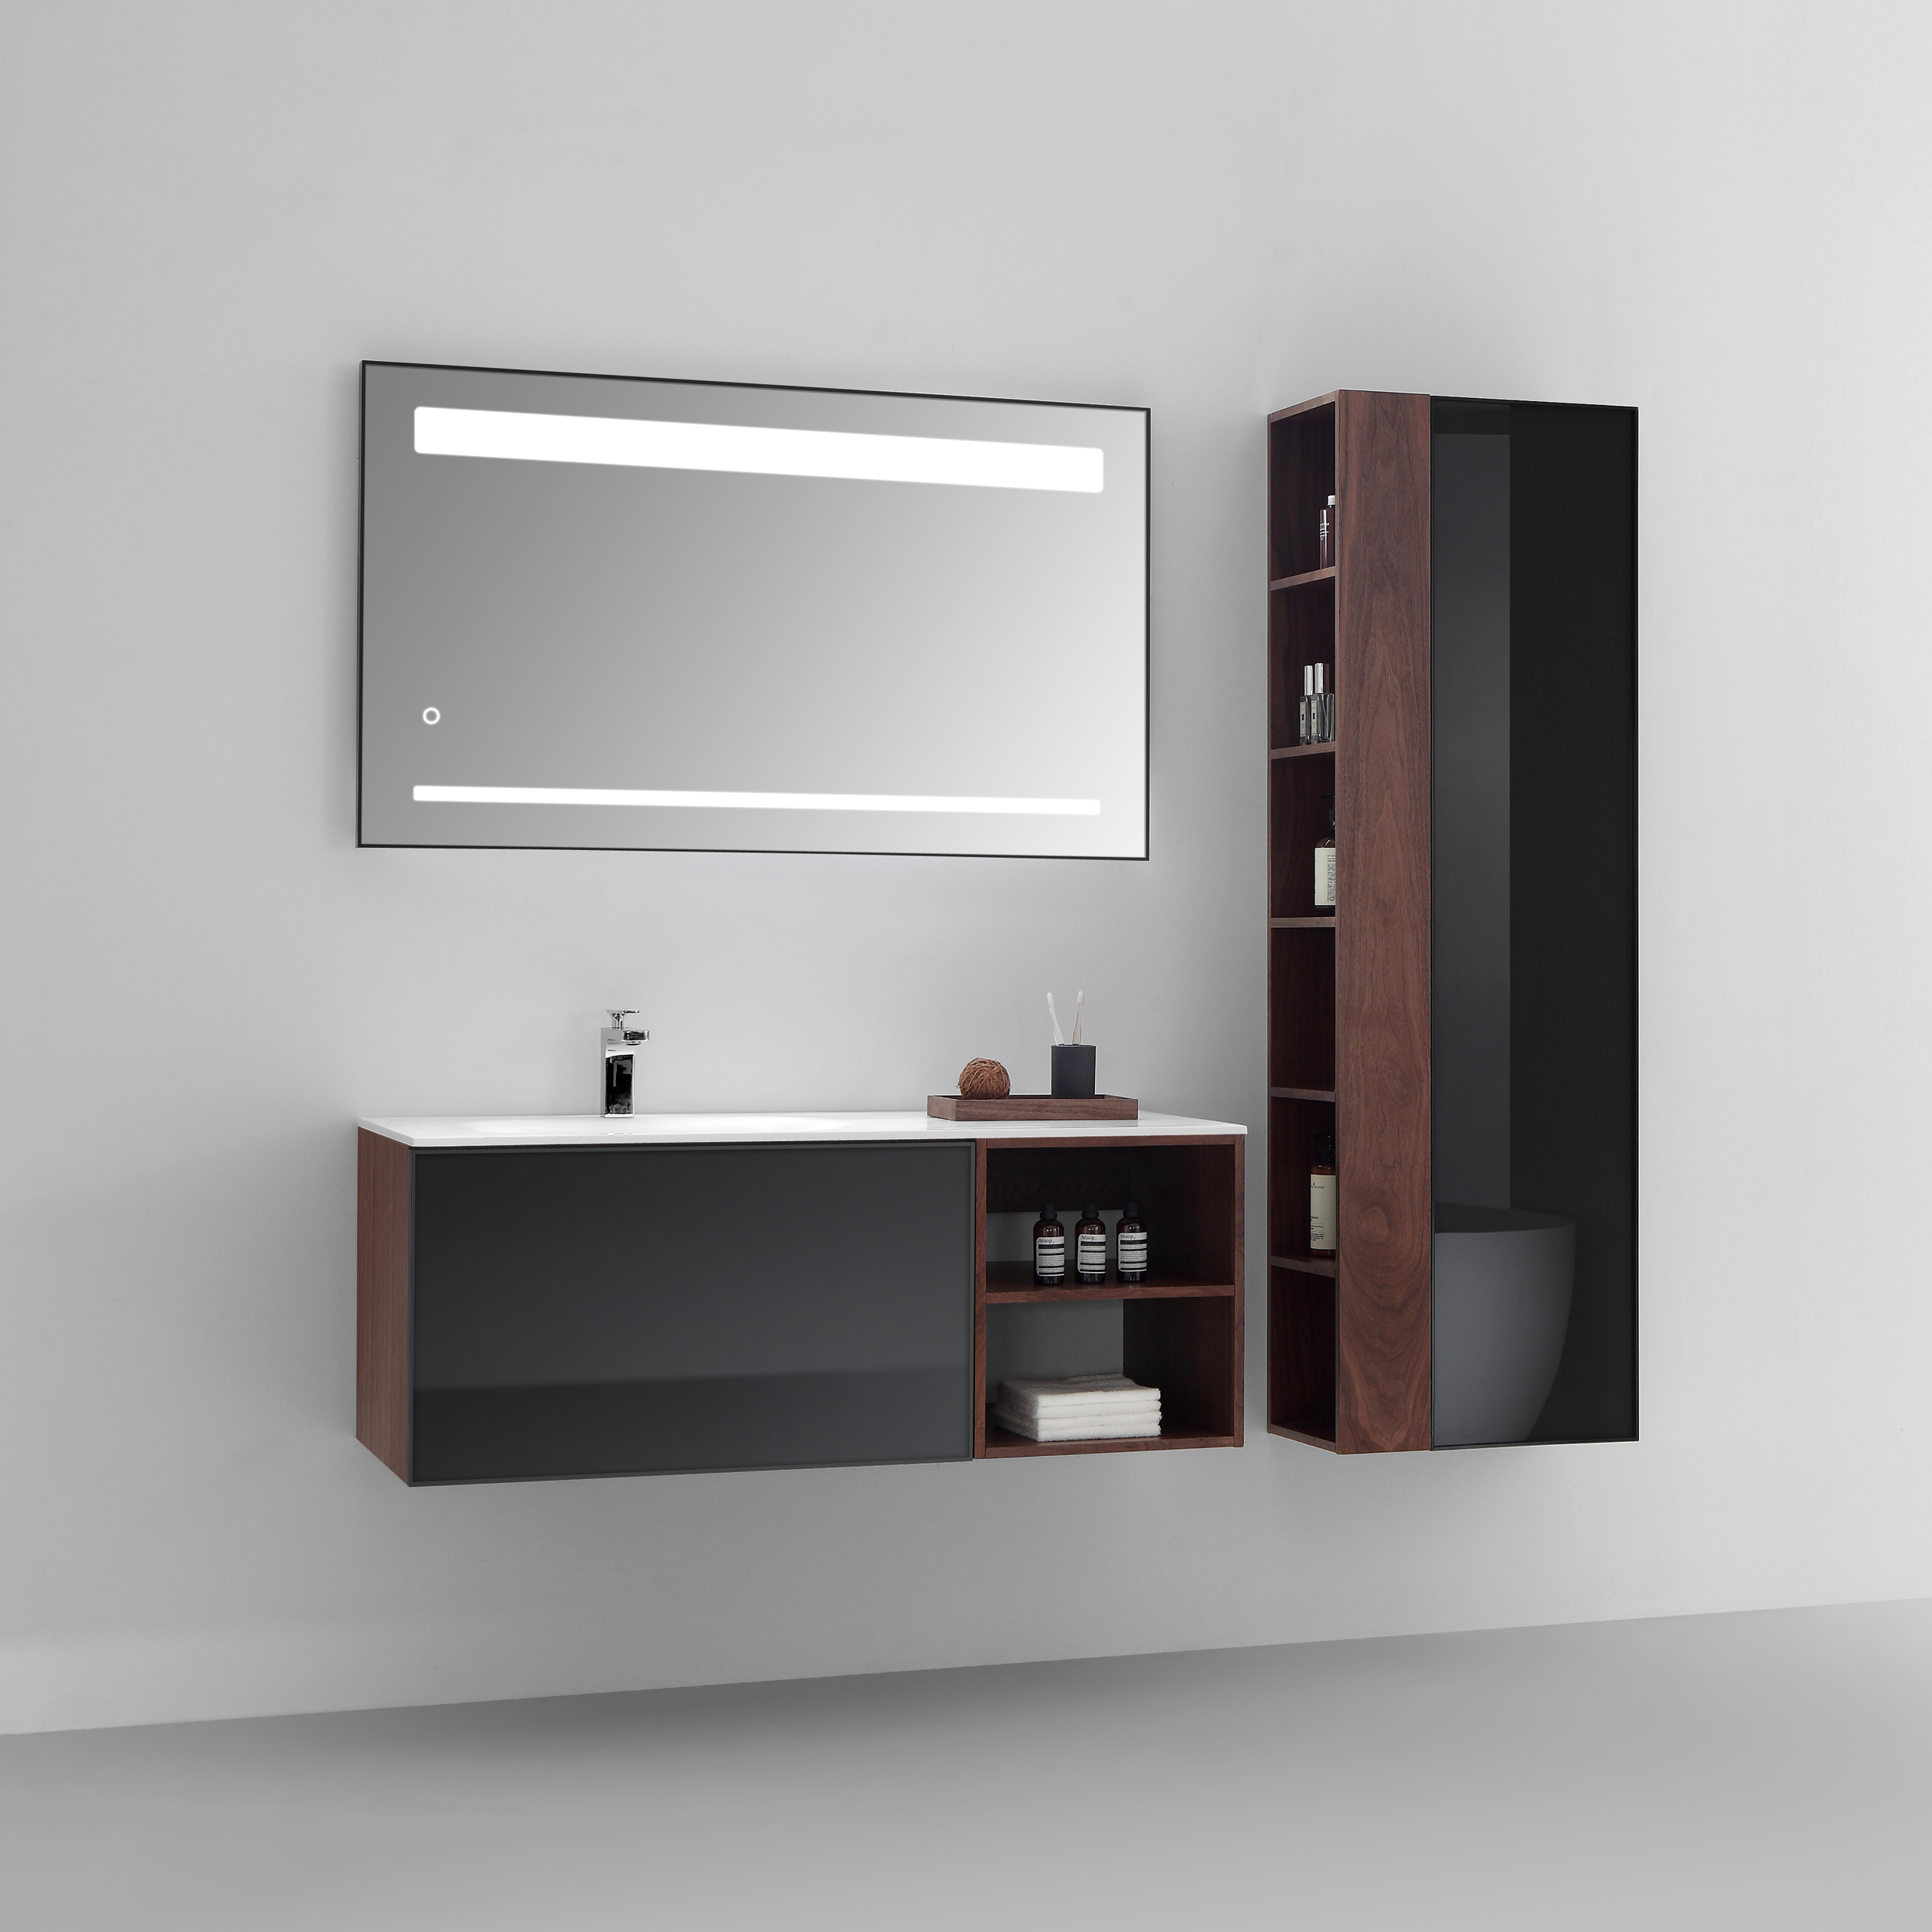 wall grey inspirational slim design tall mount cabinets mounted vanity bathrooms bathroom brown black of white cabinet